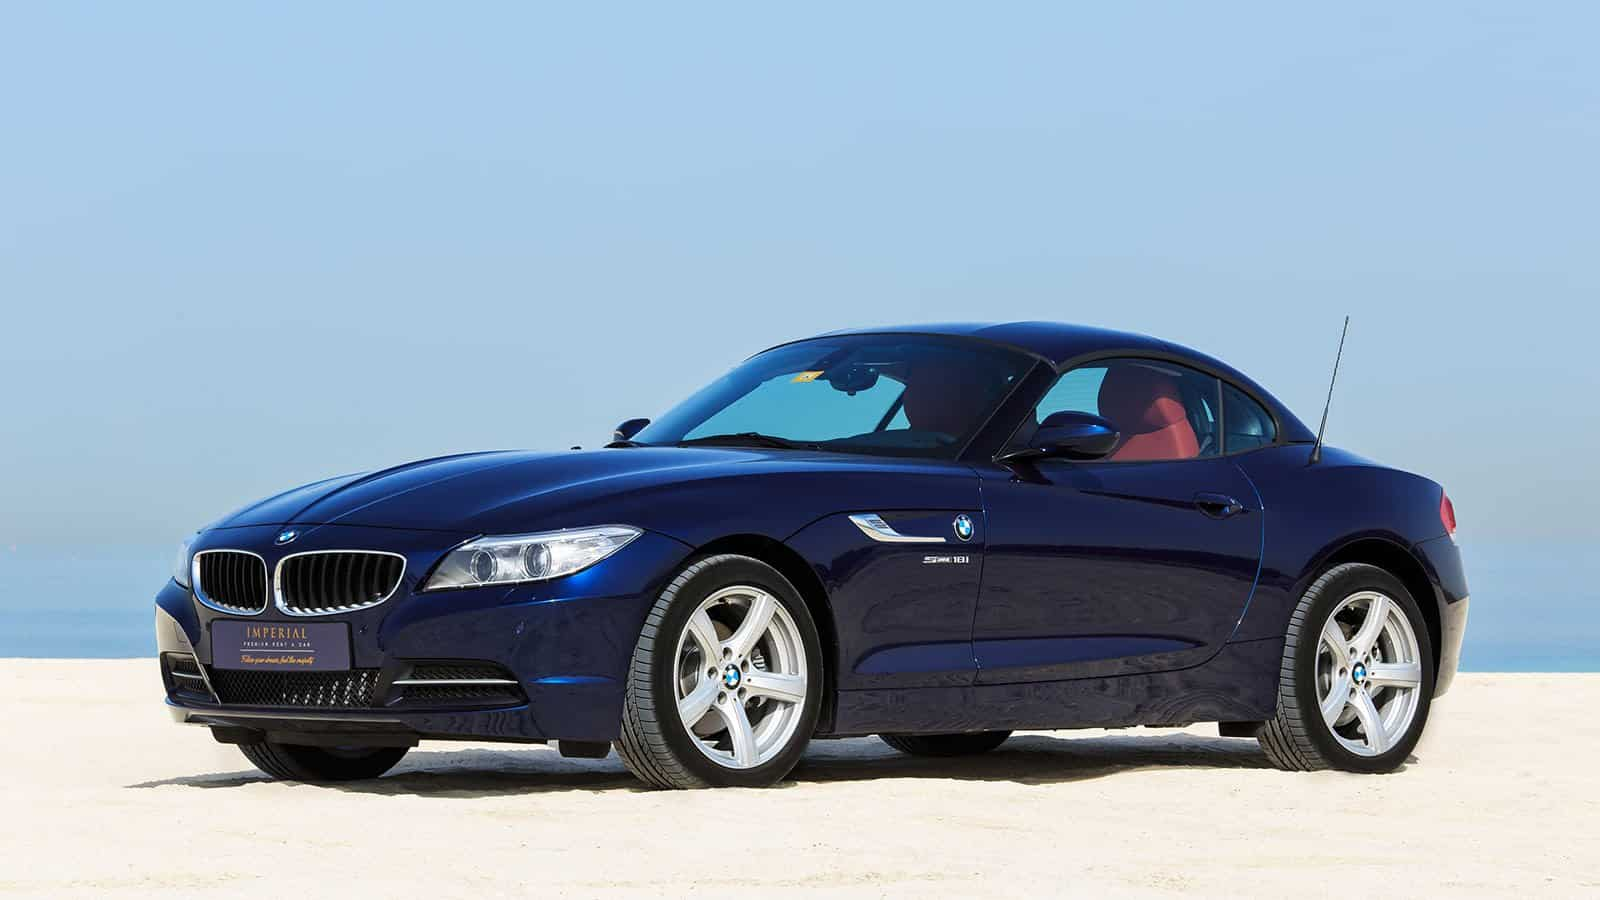 Bmw Z4 For Rent Dubai Imperial Premium Rent A Car